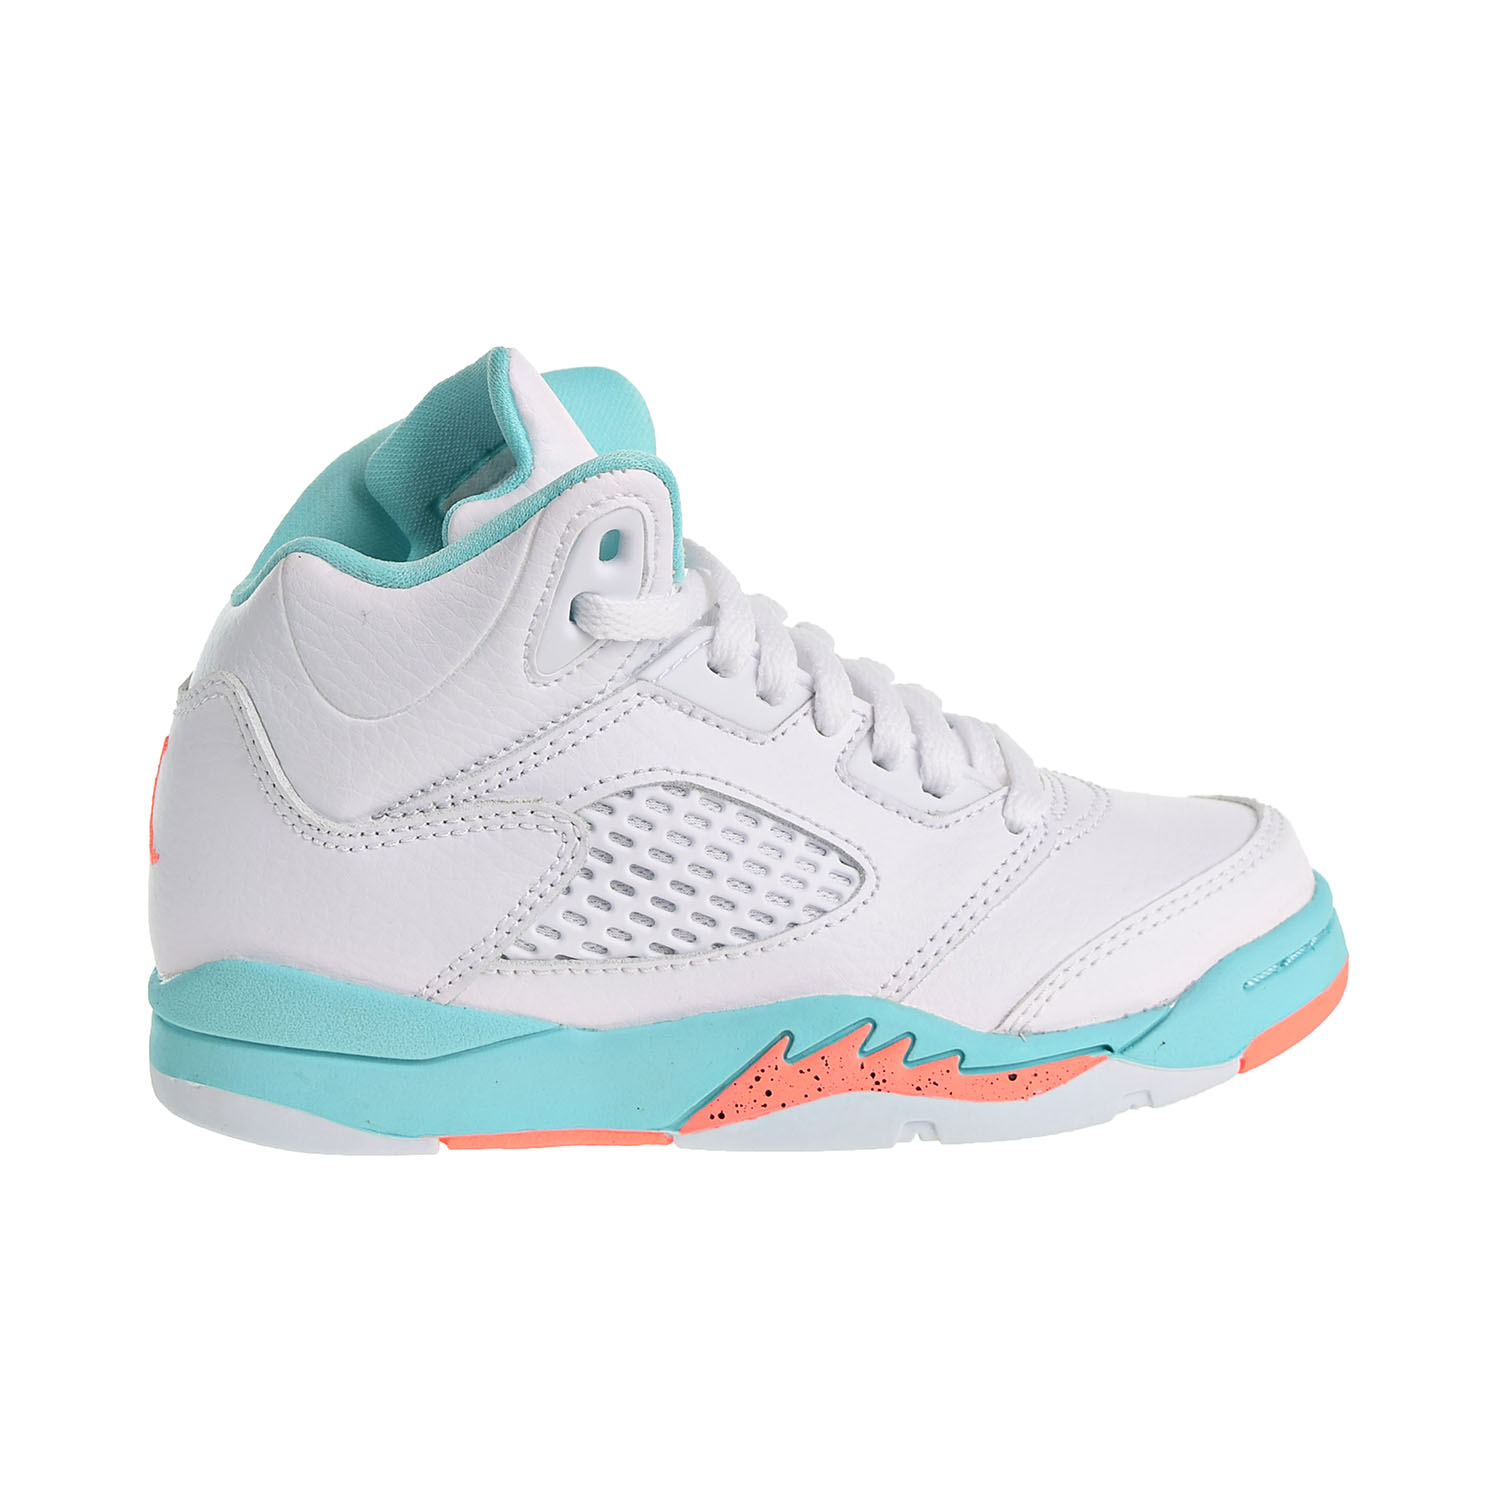 finest selection 4f1cf 6c34b Details about Jordan 5 Retro GP Little Kid's Shoes White/Crimson  Pulse/Light Aqua 440893-100